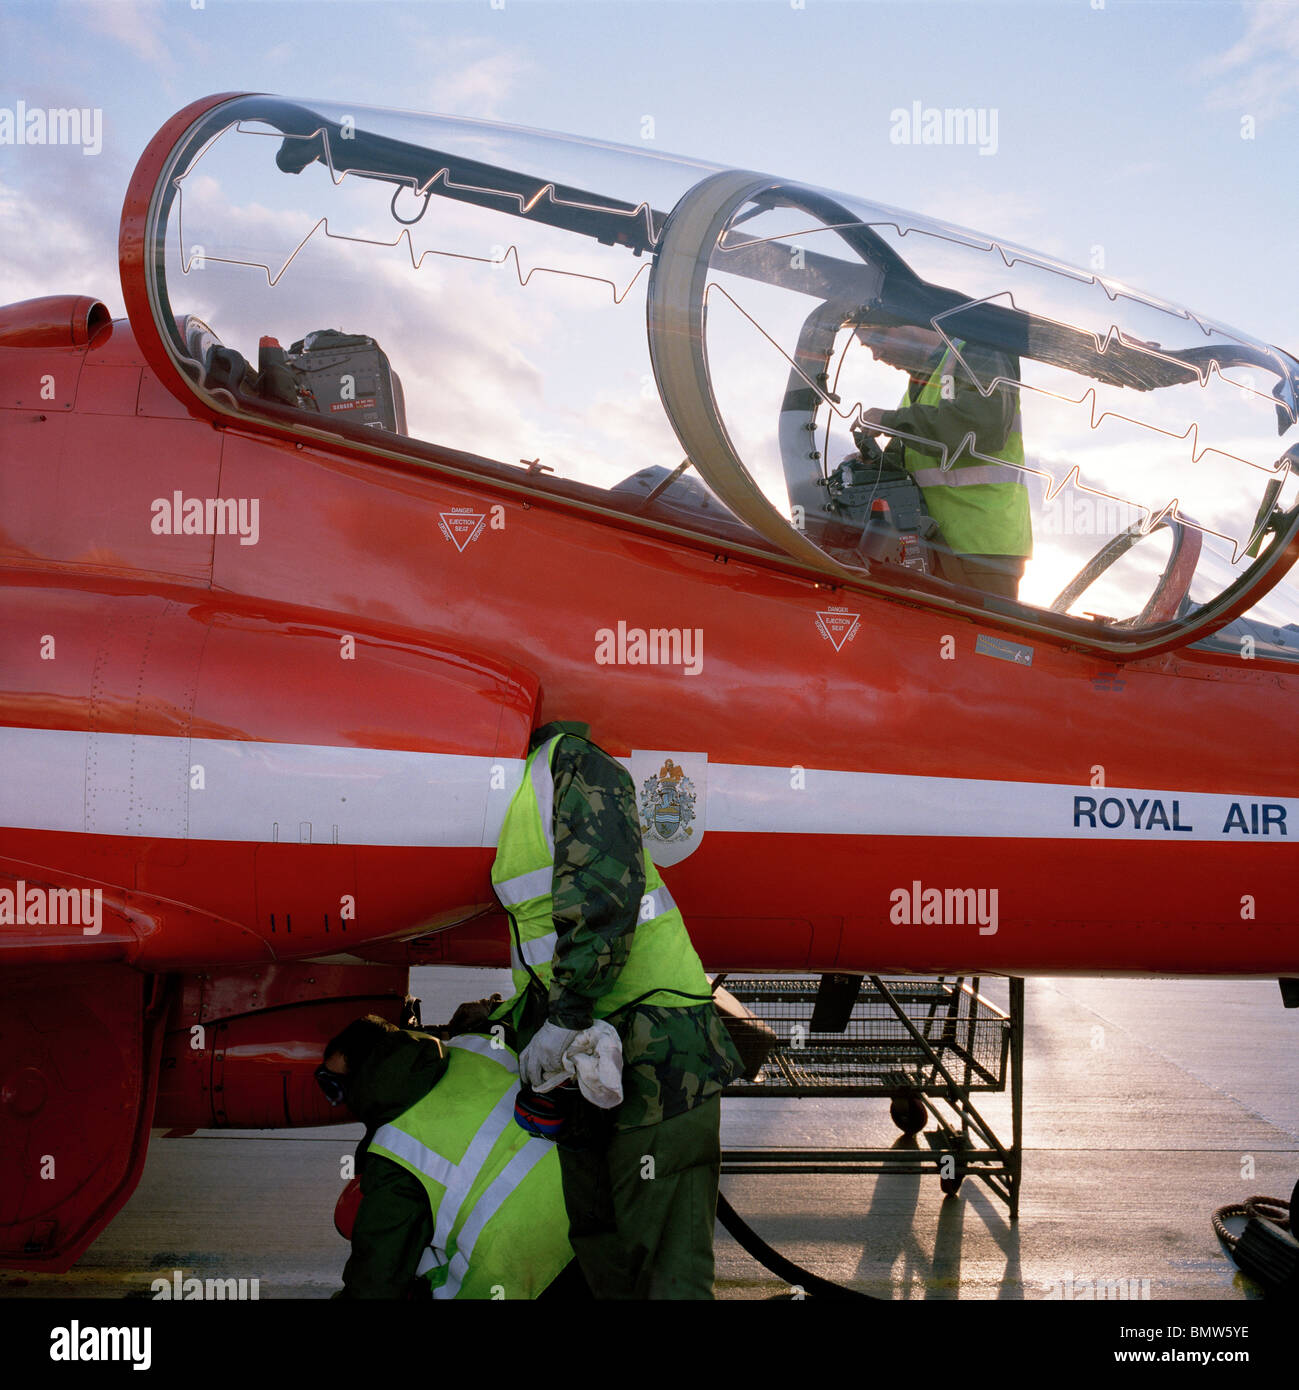 Ground Crew Prepare Bae Systems Hawk Jet Of The Red Arrows Stock